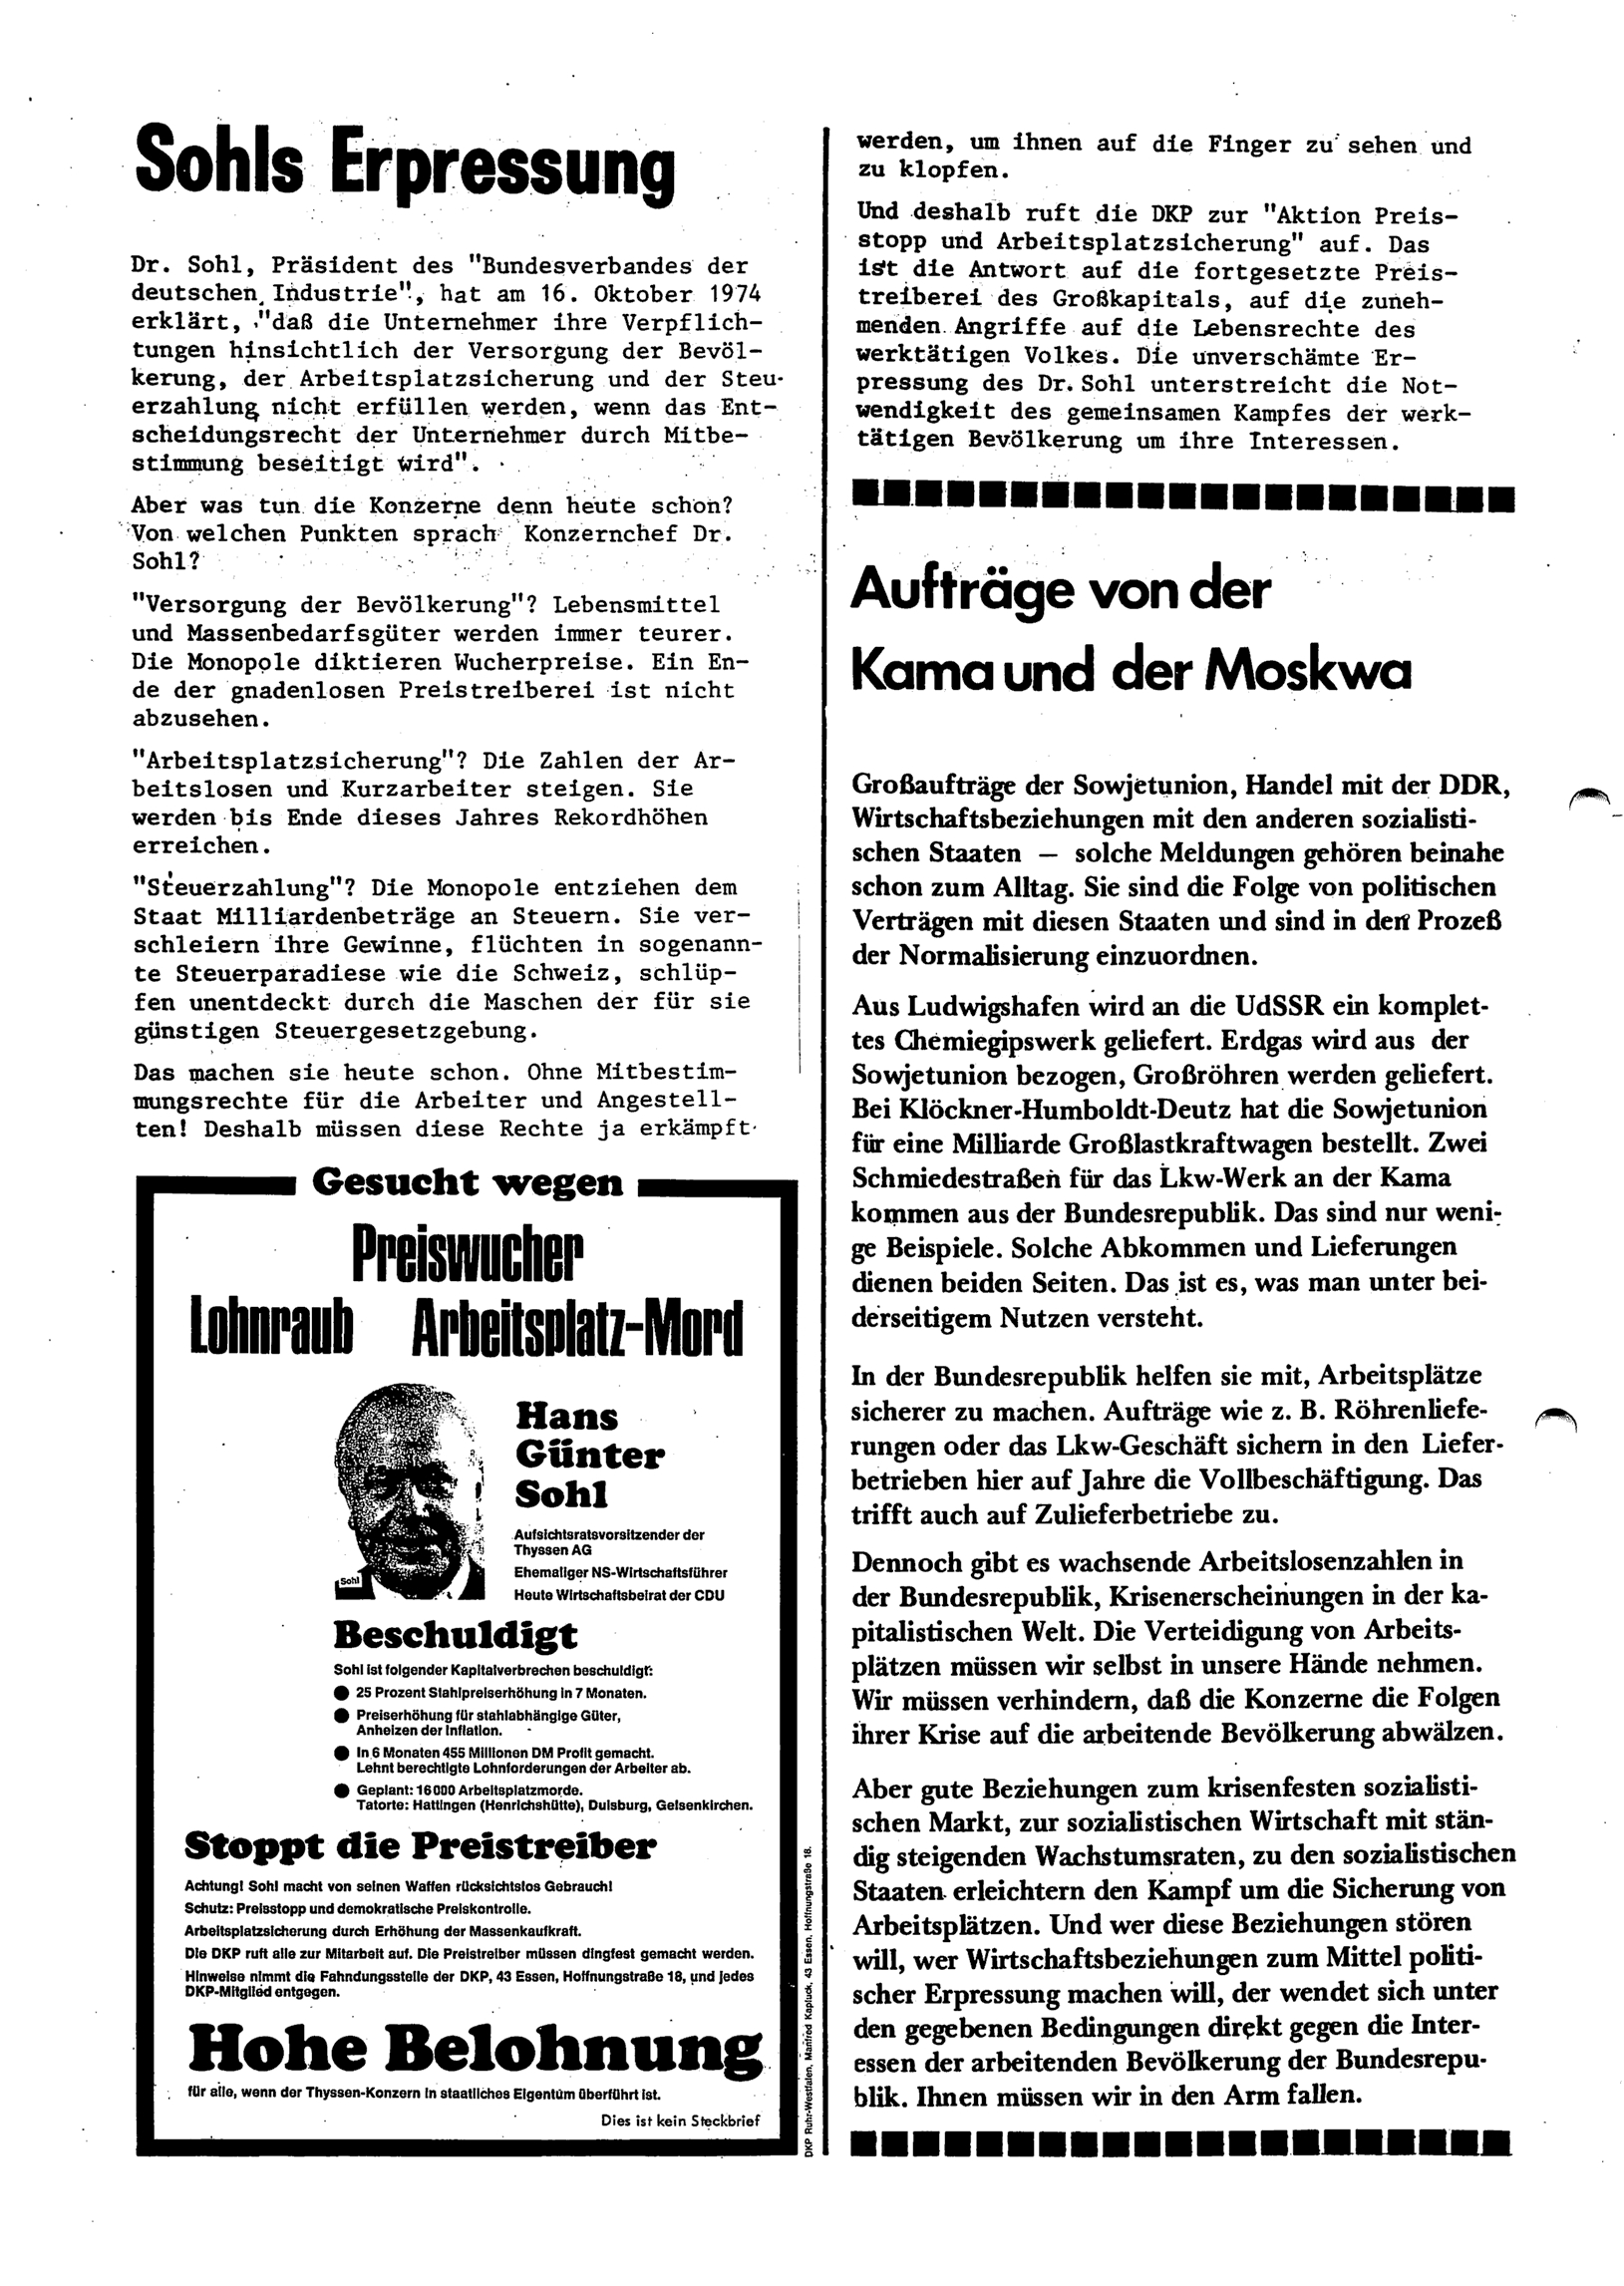 GE_Stahlstimme_19741100_2_02